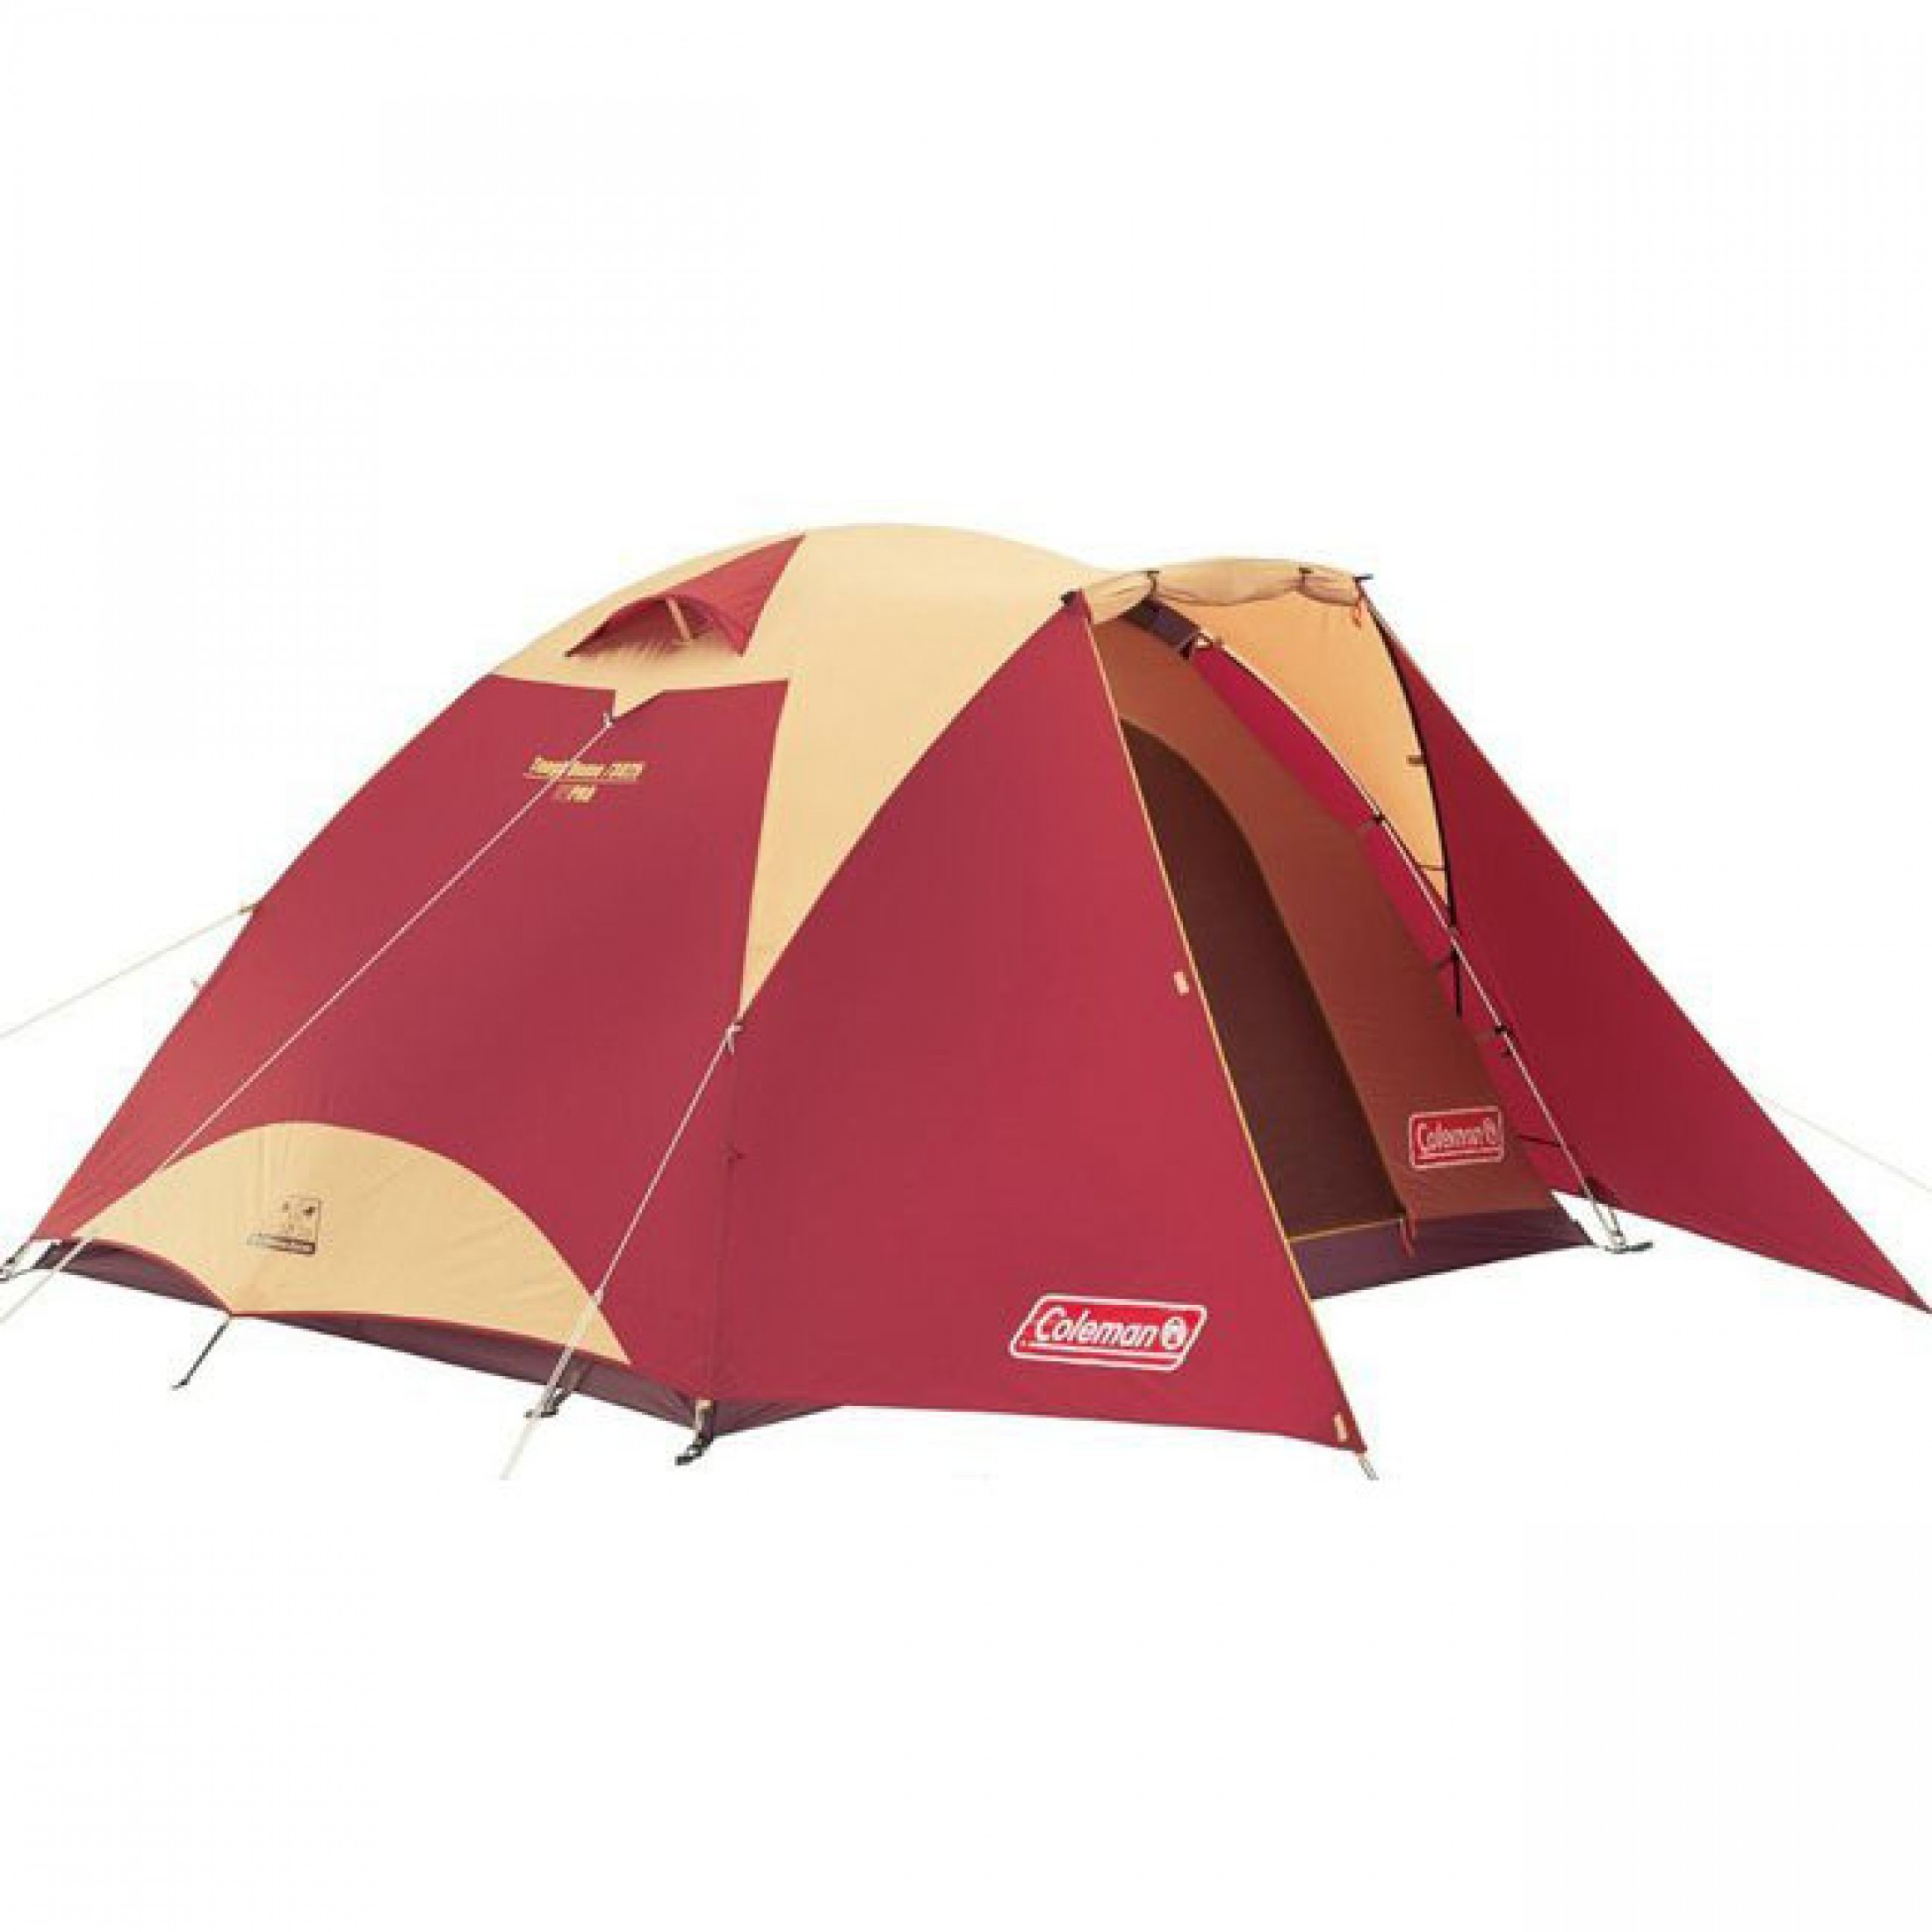 COLEMAN 3025 Tough Dome Tent ; Spacious tent for 4-5 person ; 175cm height, room to stand and move without restriction